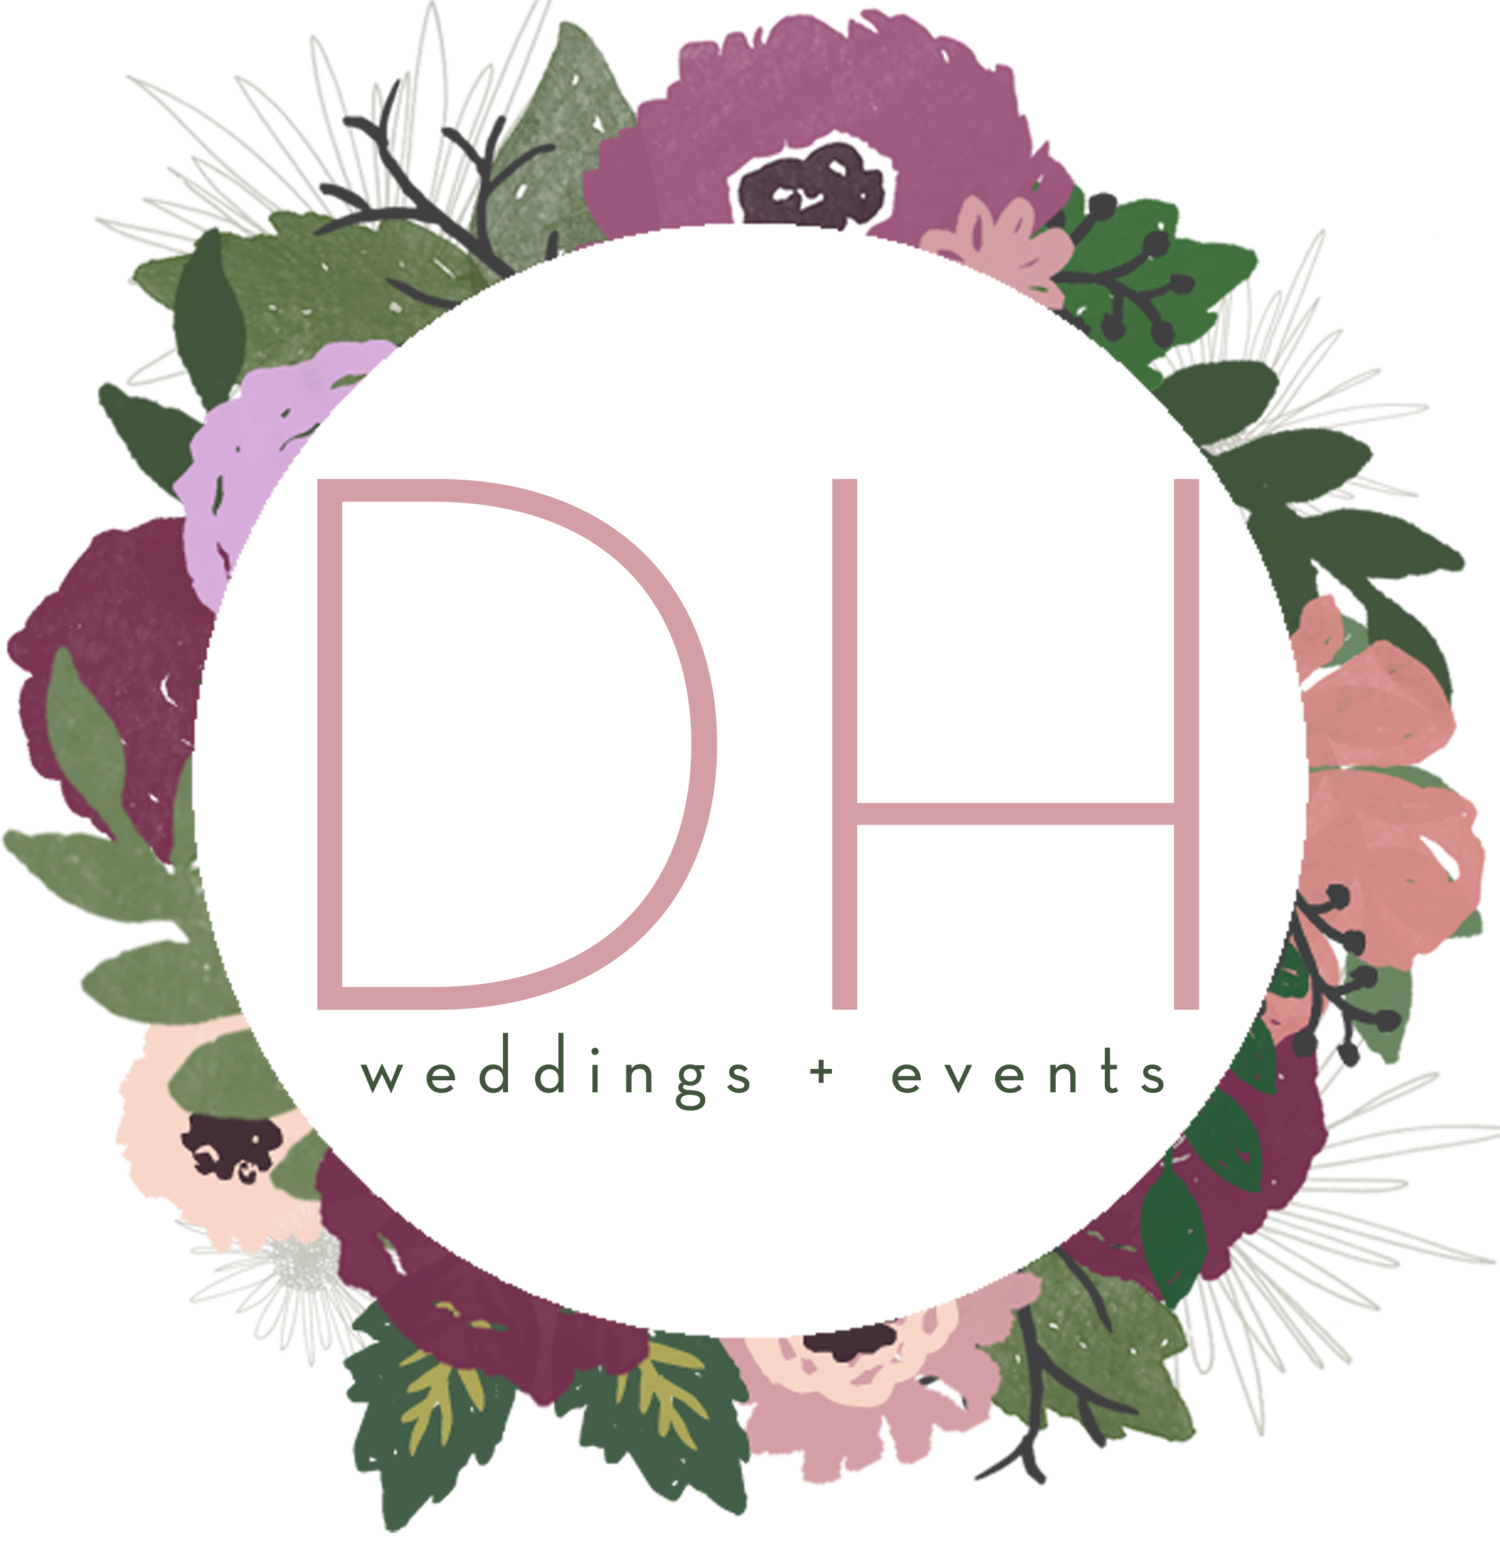 Hills clipart outdoor background. Daffodil hill weddings events